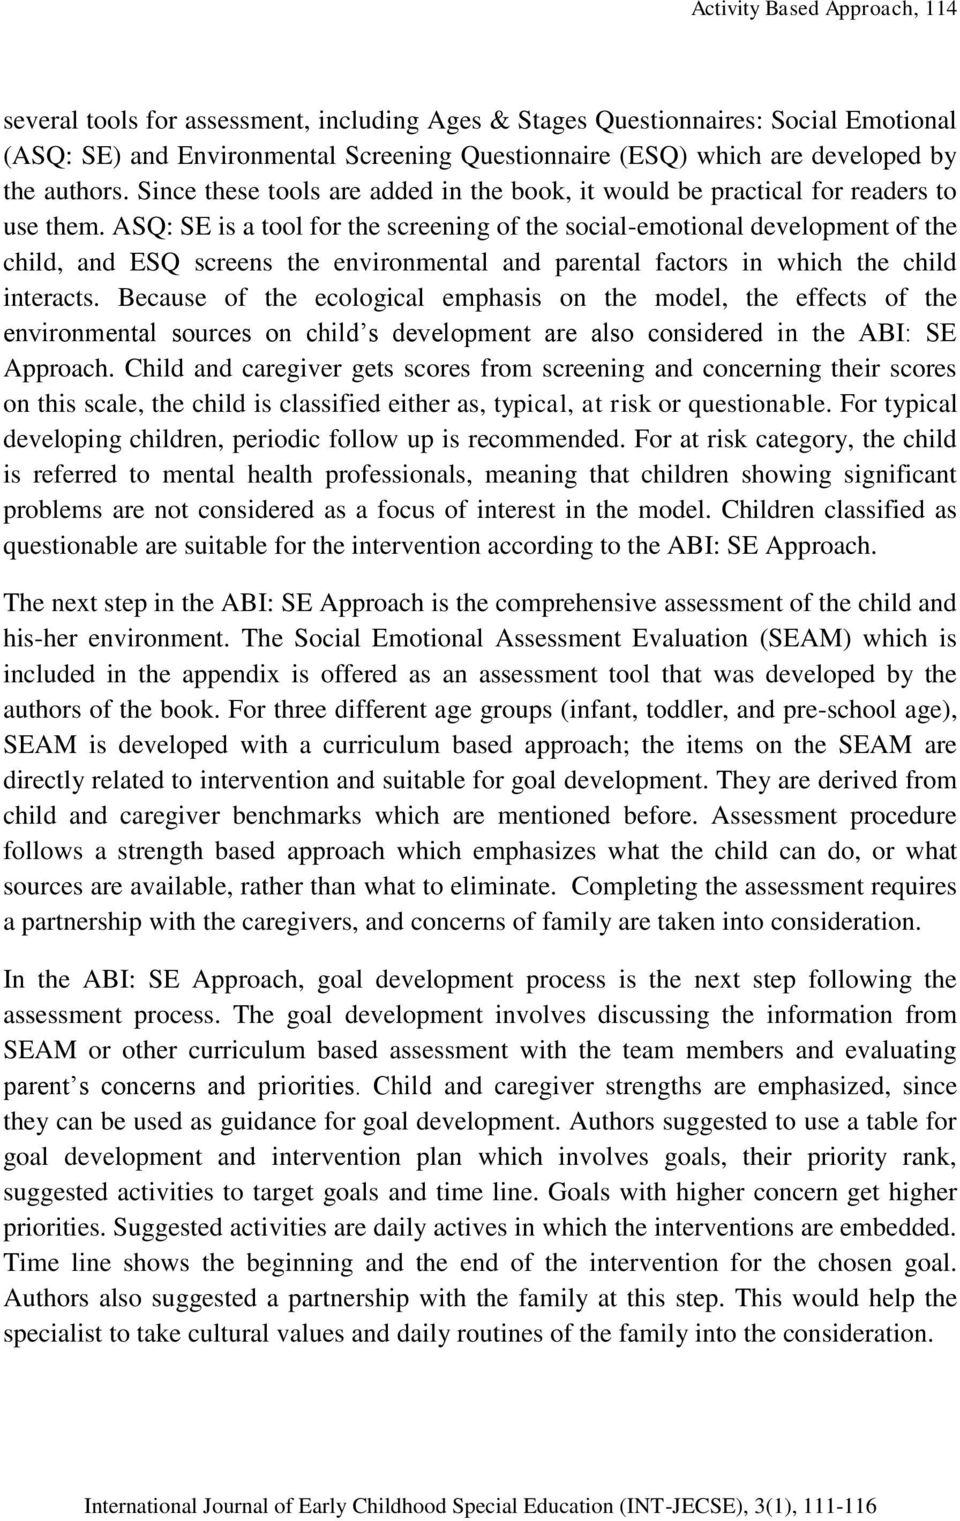 ASQ: SE is a tool for the screening of the social-emotional development of the child, and ESQ screens the environmental and parental factors in which the child interacts.